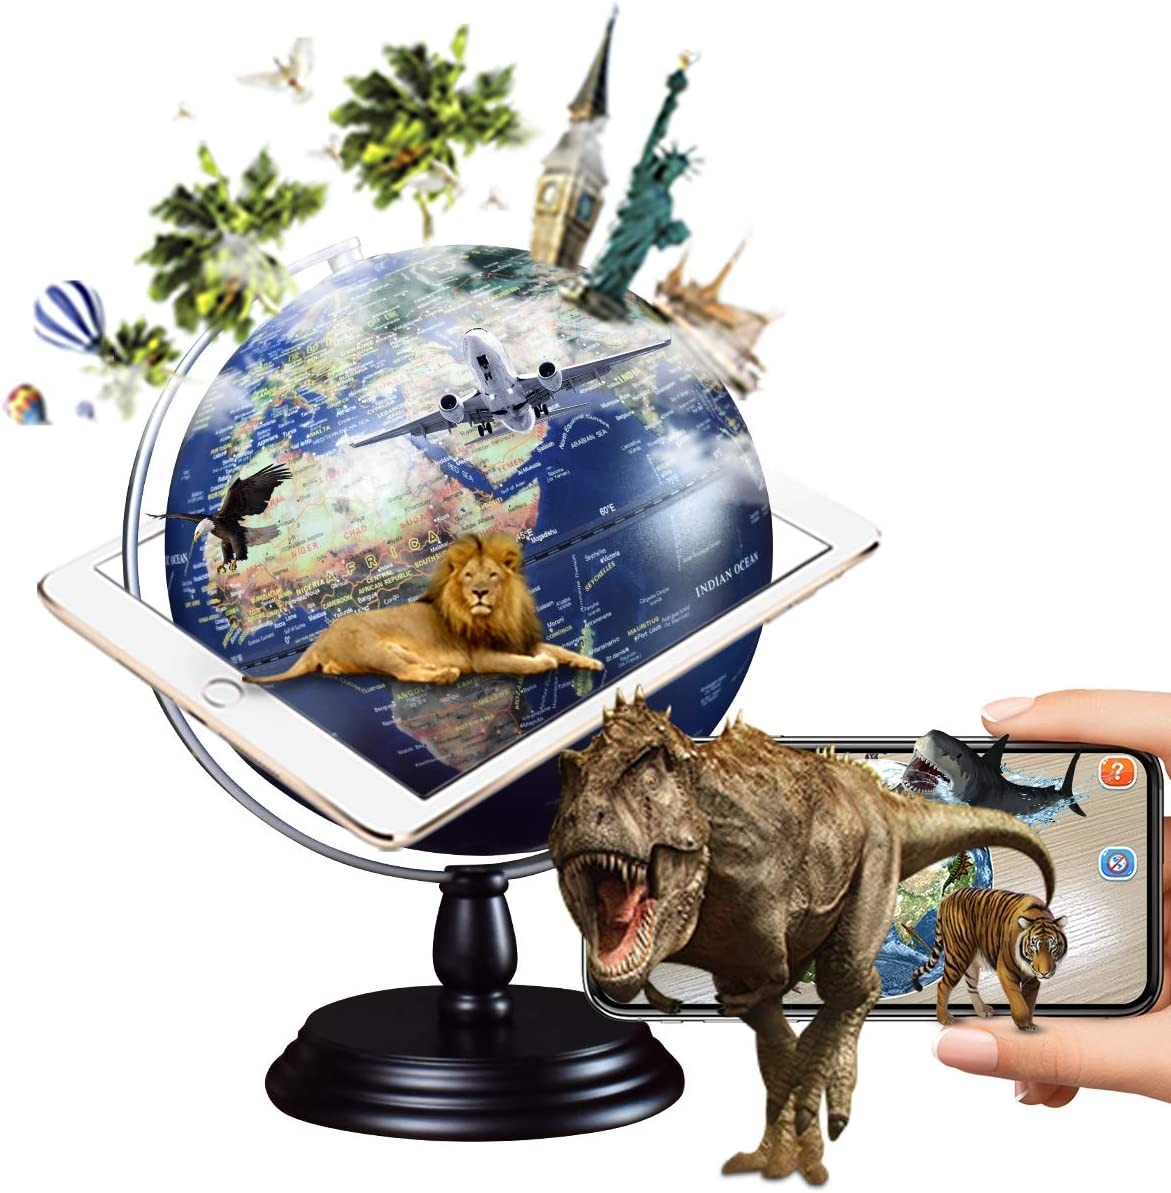 FUN GLOBE AR Explore The World Globe Desktop Education Geographic Interactive Earth Globes for Kids & Adults for Educational Toys/Office Supplies/Indoor Decorations/Holiday Gift (Navy 10 in)